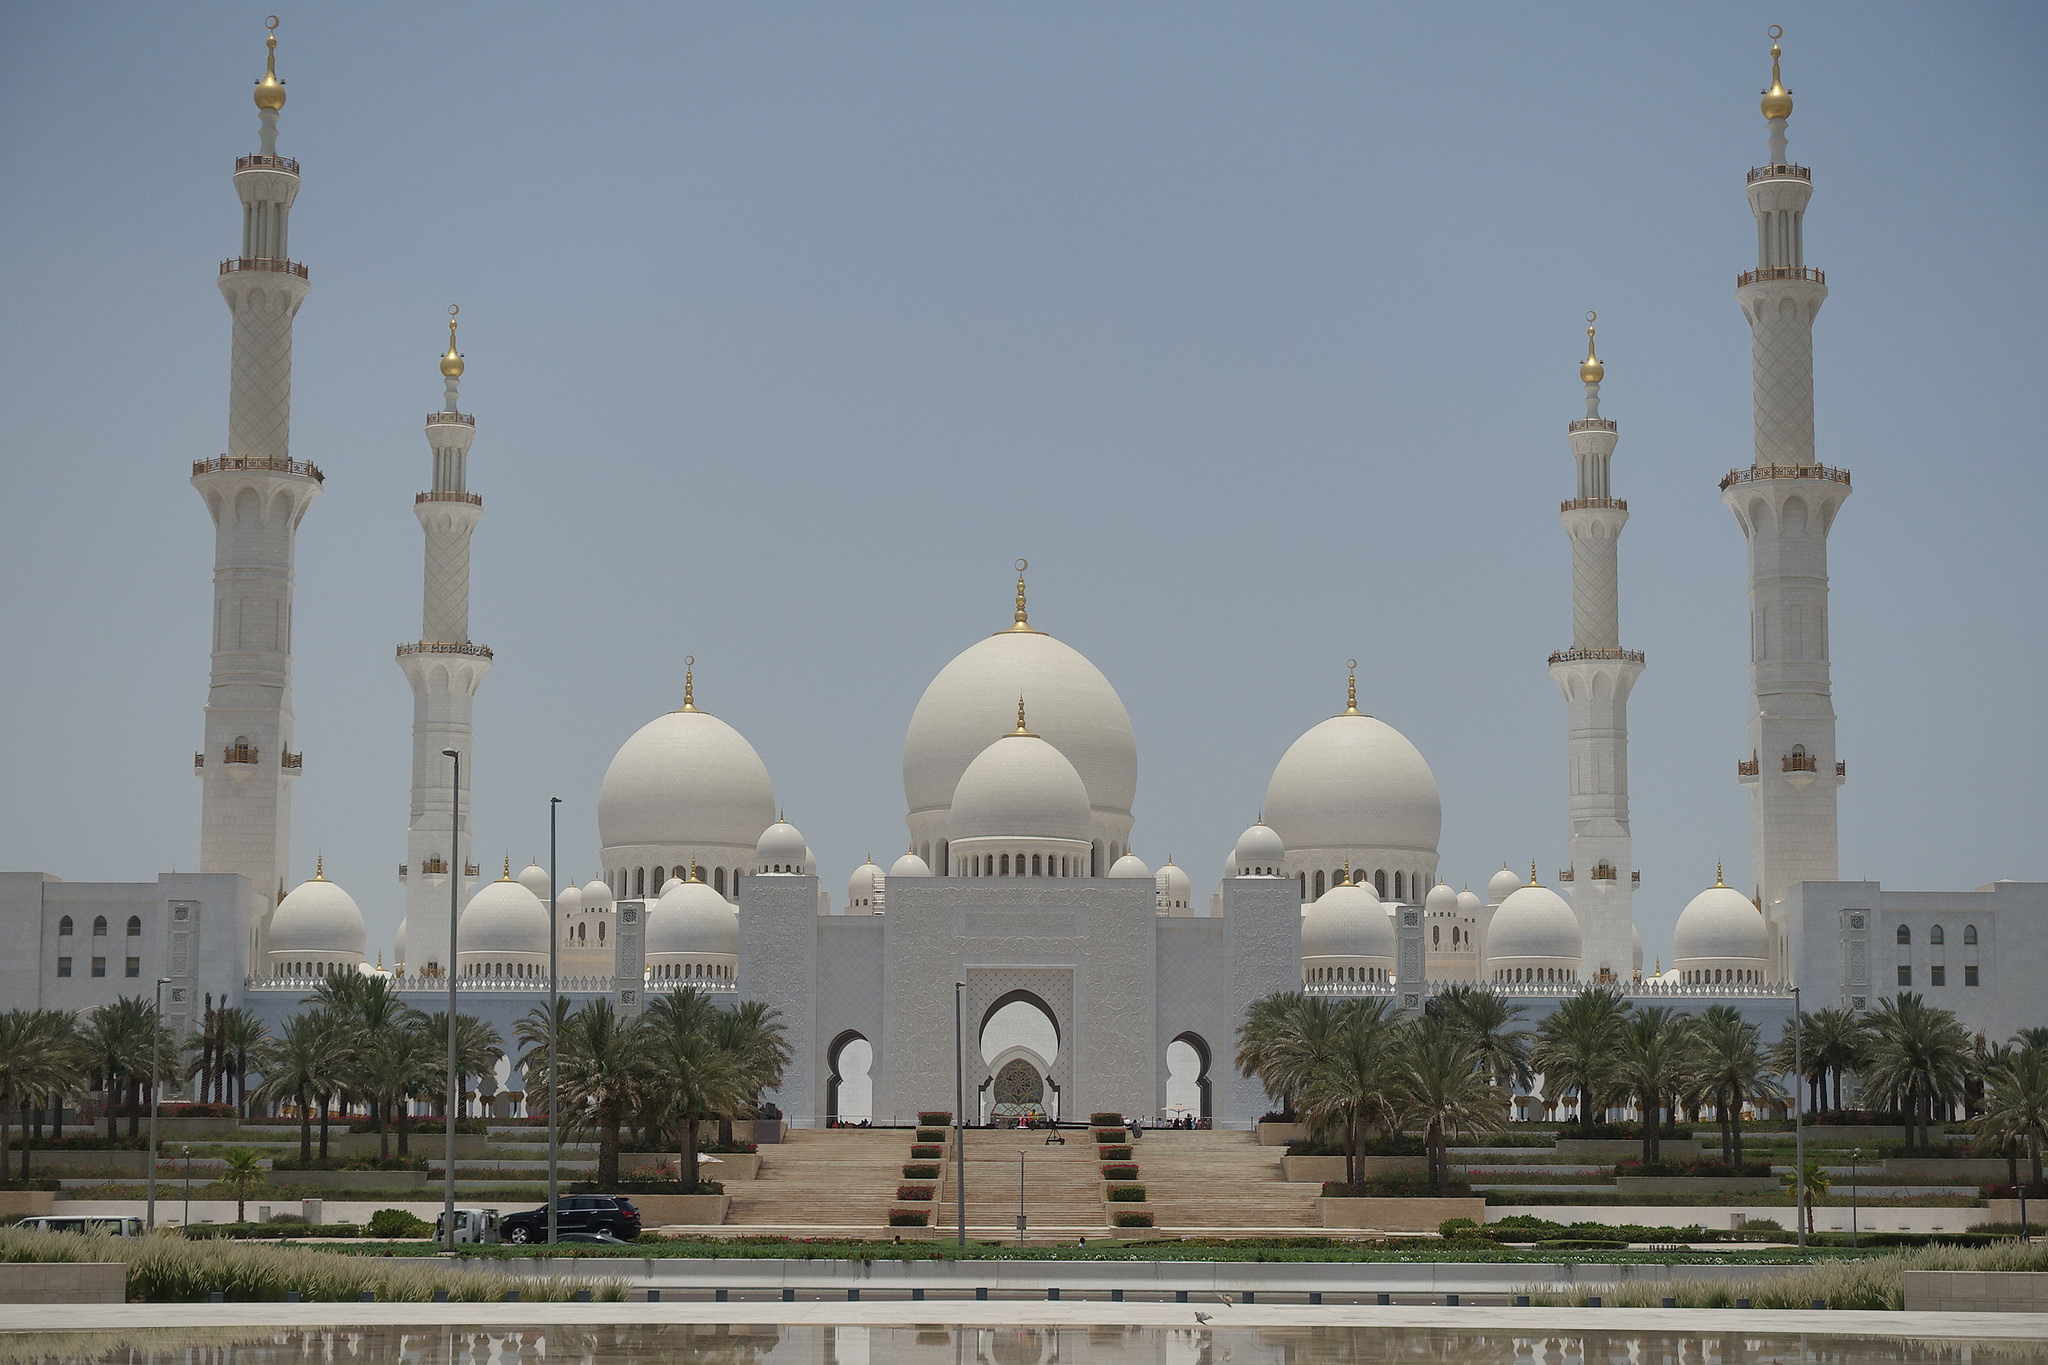 Abu Dhabi Uae Local Travel Information And City Guide